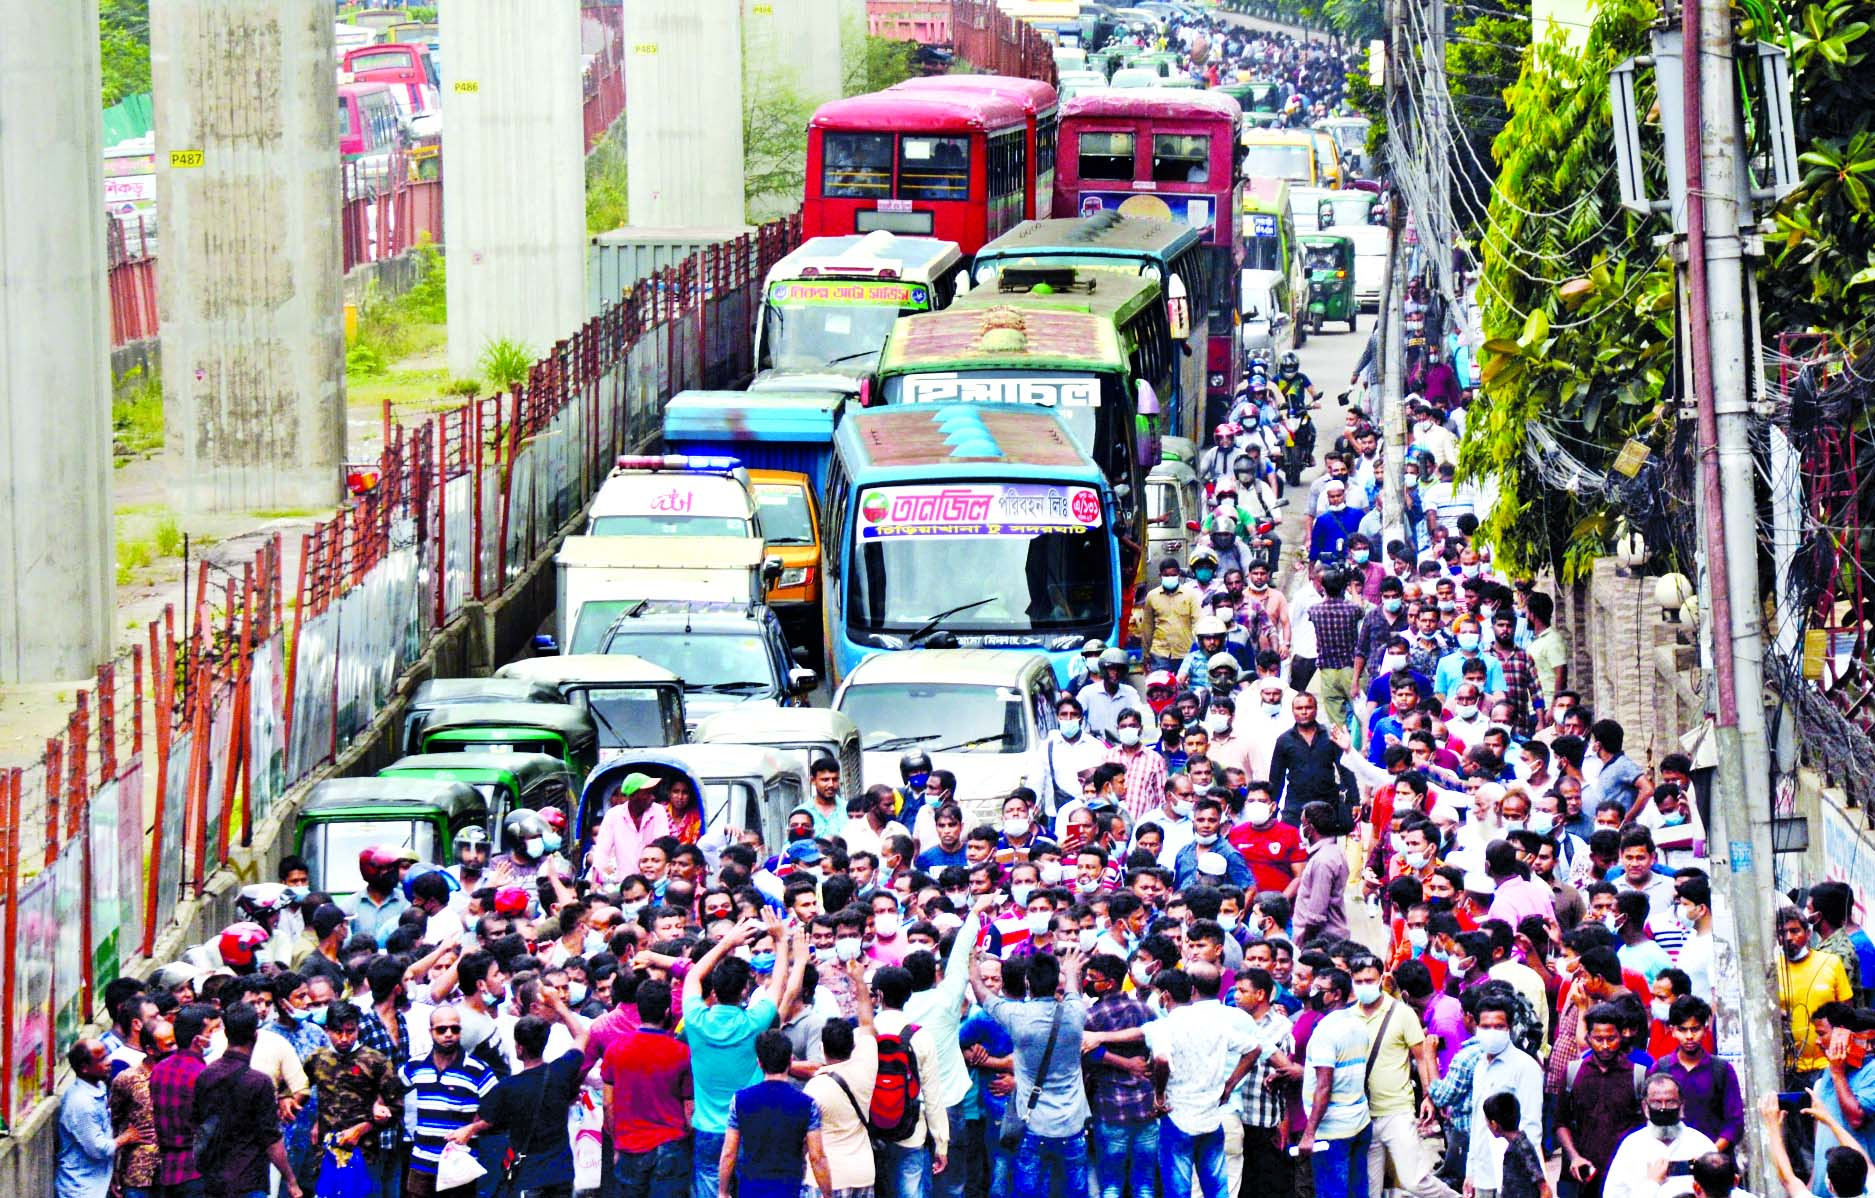 Migrant workers demonstrate in front of Saudi Airlines office at Pan Pacific Sonargaon Hotel in the capital on Tuesday, causing traffic congestion in Karwan Bazar intersection.